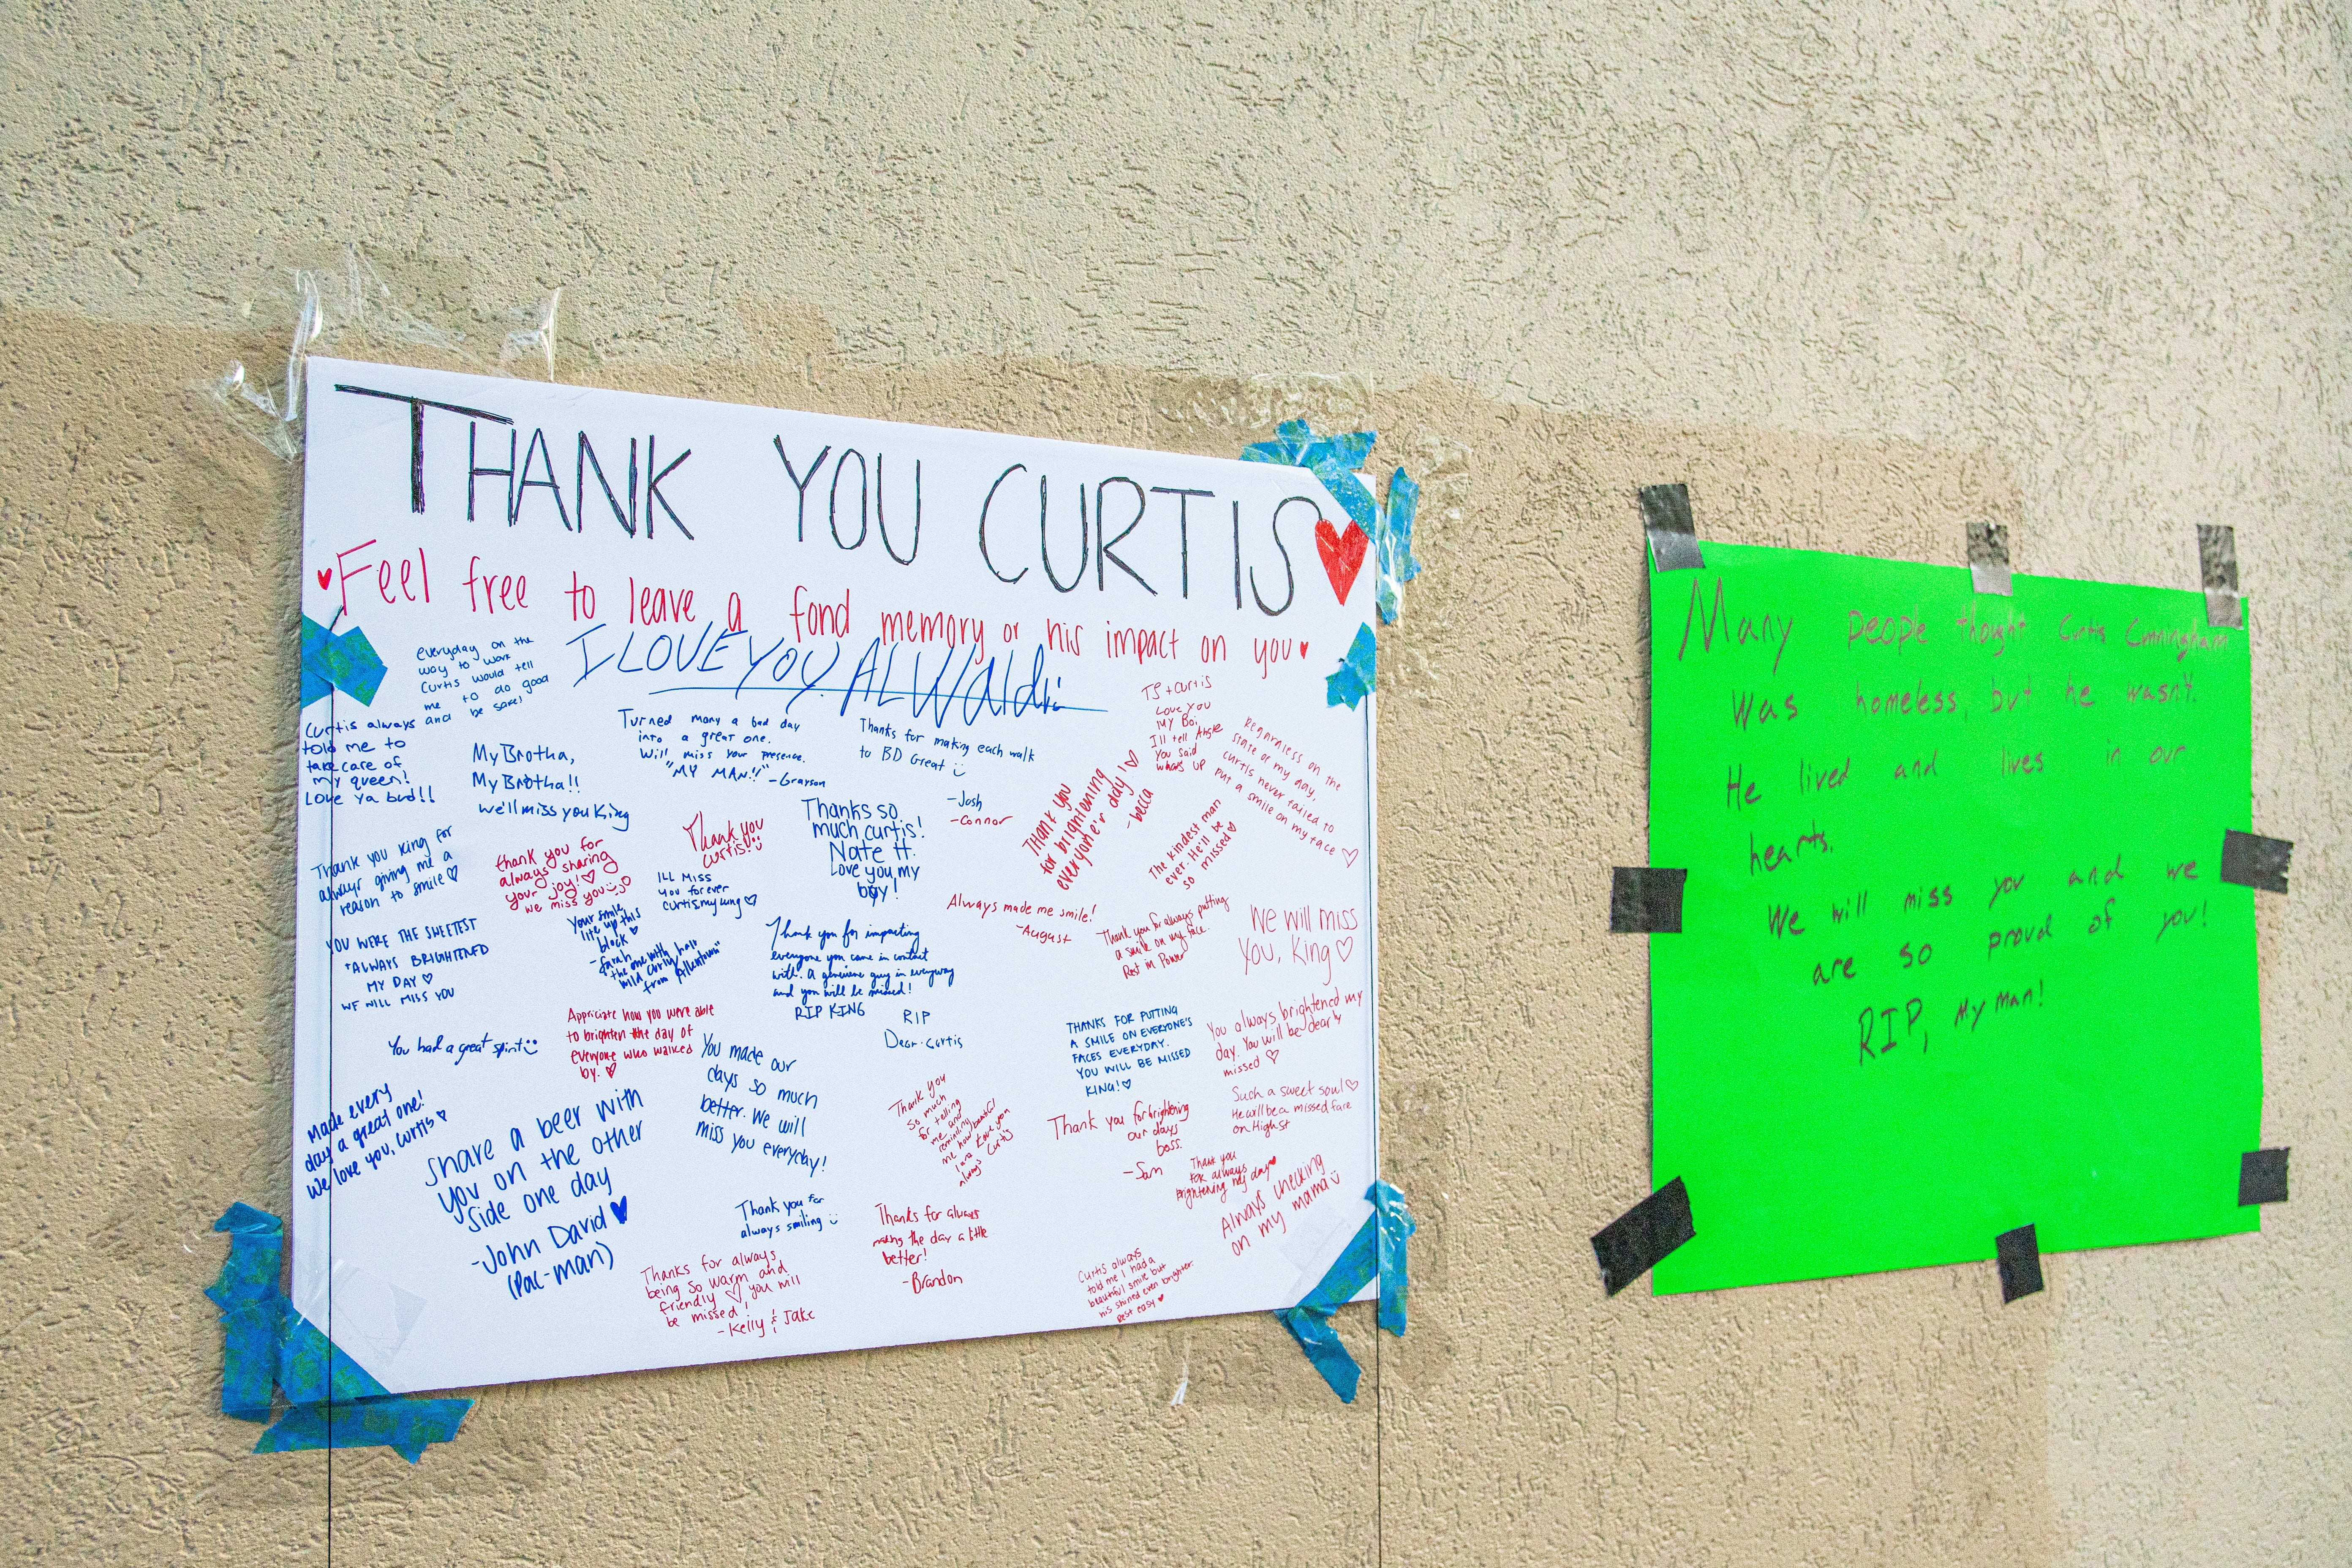 Two posters outside honoring Cunningham's legacy.